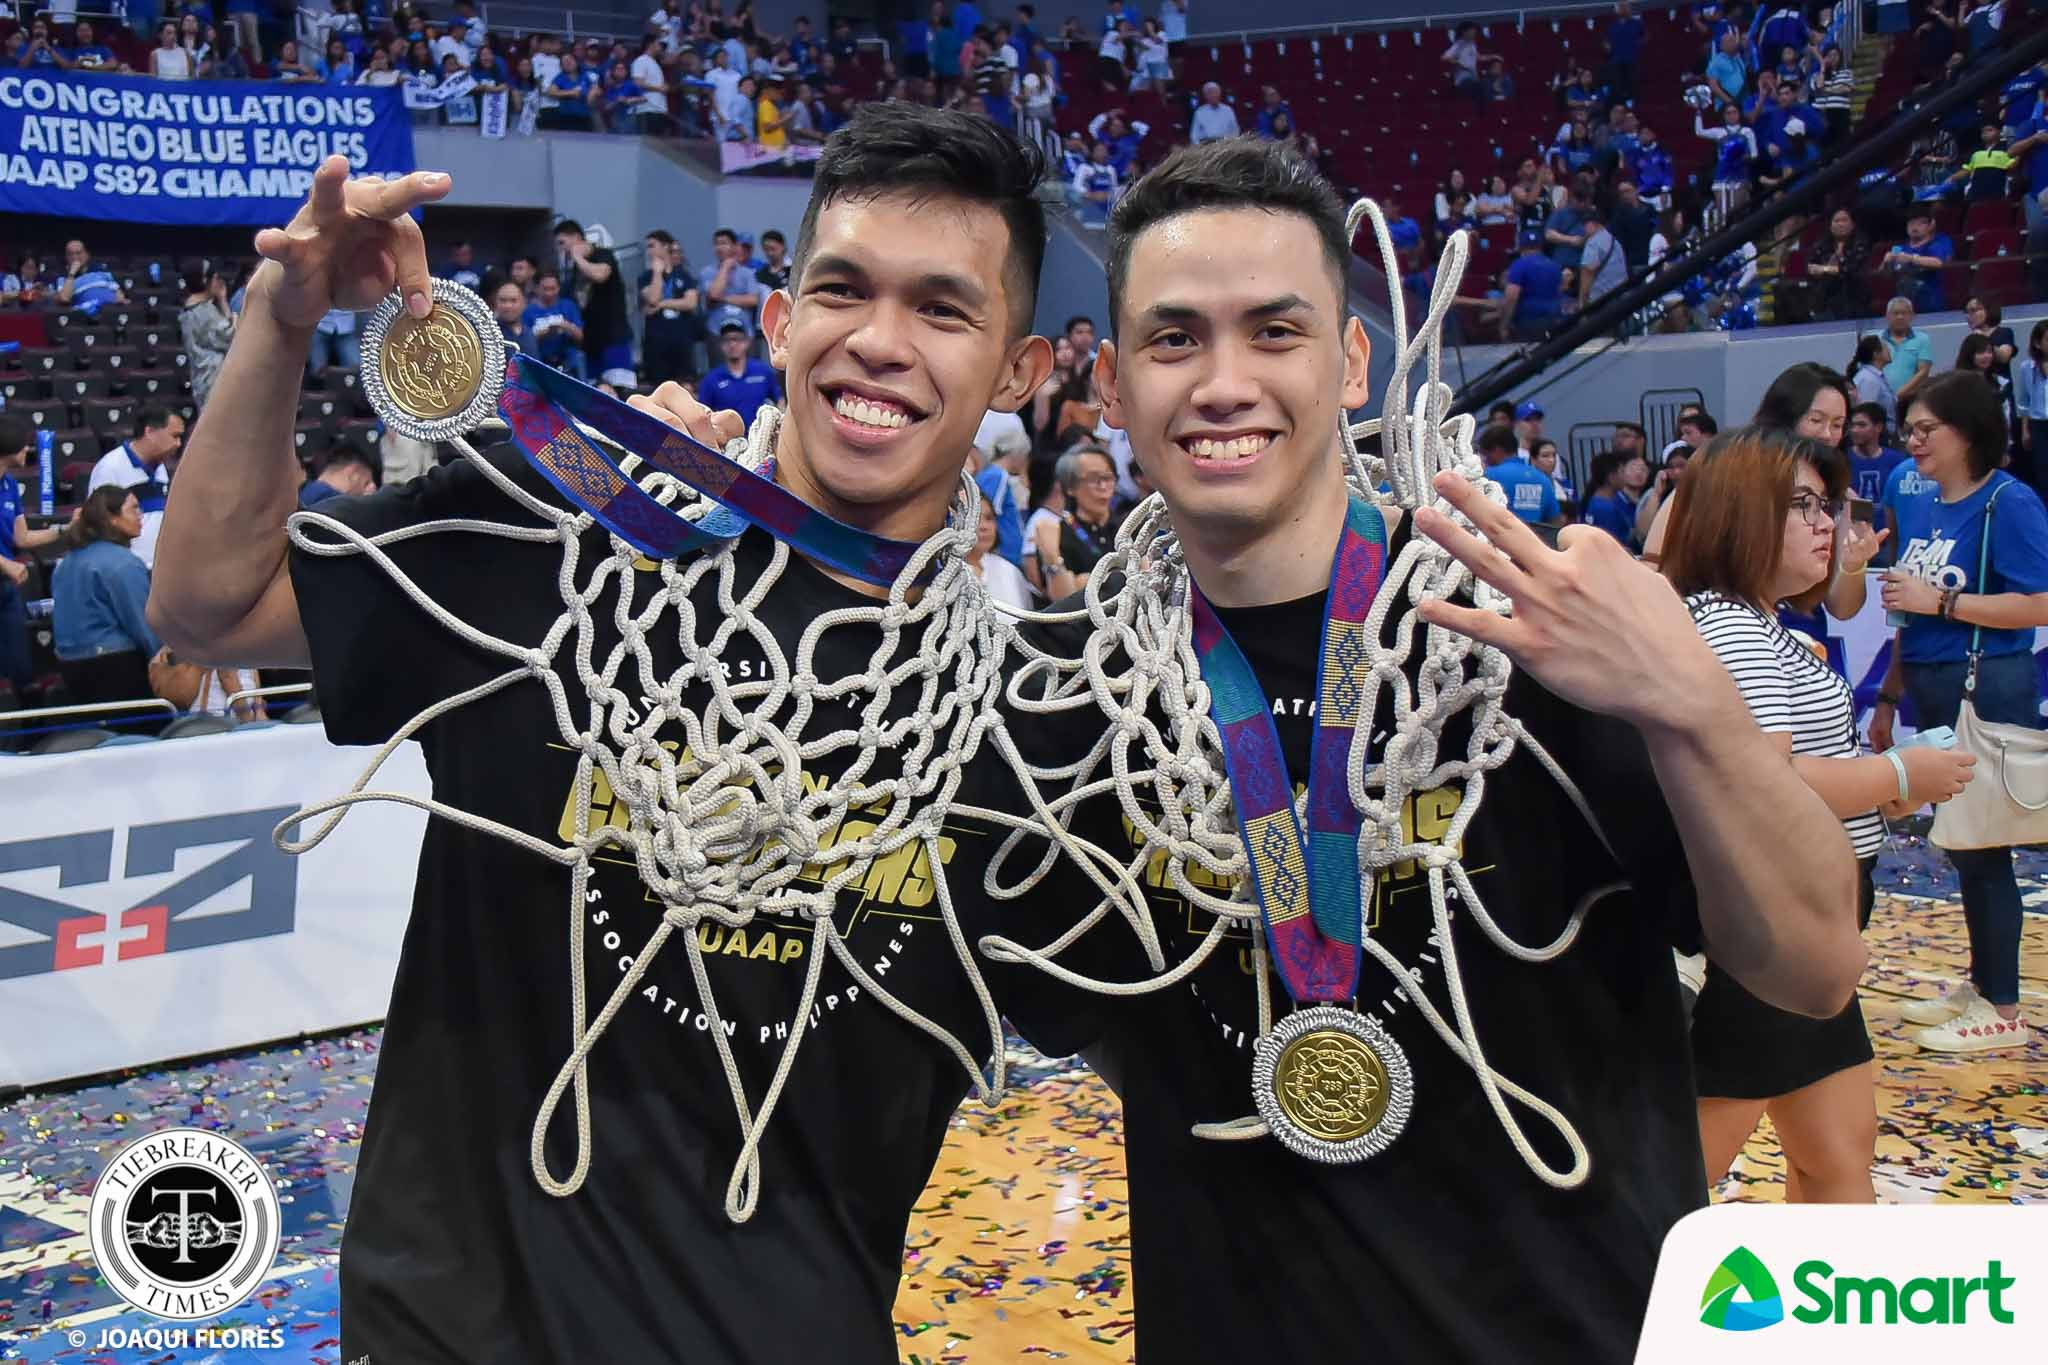 UAAP-82-MBB-Finals-G2-ADMU-vs.-UST-Ravena-Nieto-4851 After stepping out of Kiefer's shadow, Thirdy Ravena becomes history-maker ADMU Basketball News UAAP  - philippine sports news